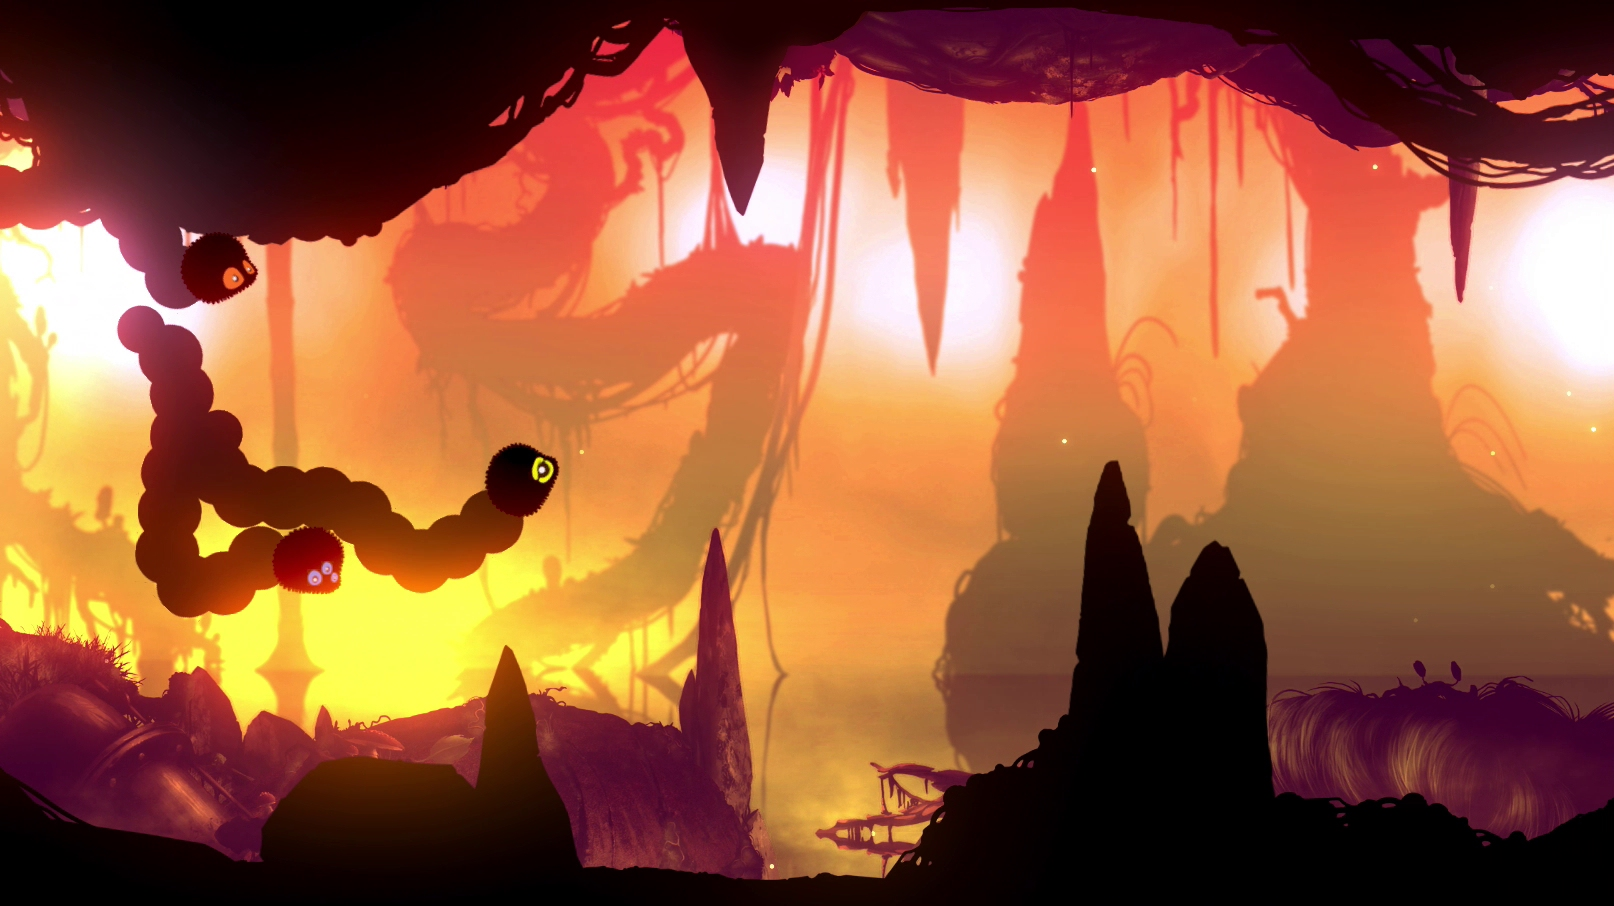 Badland update adds 3D touch and a campaign for the best Halloween user-made levels